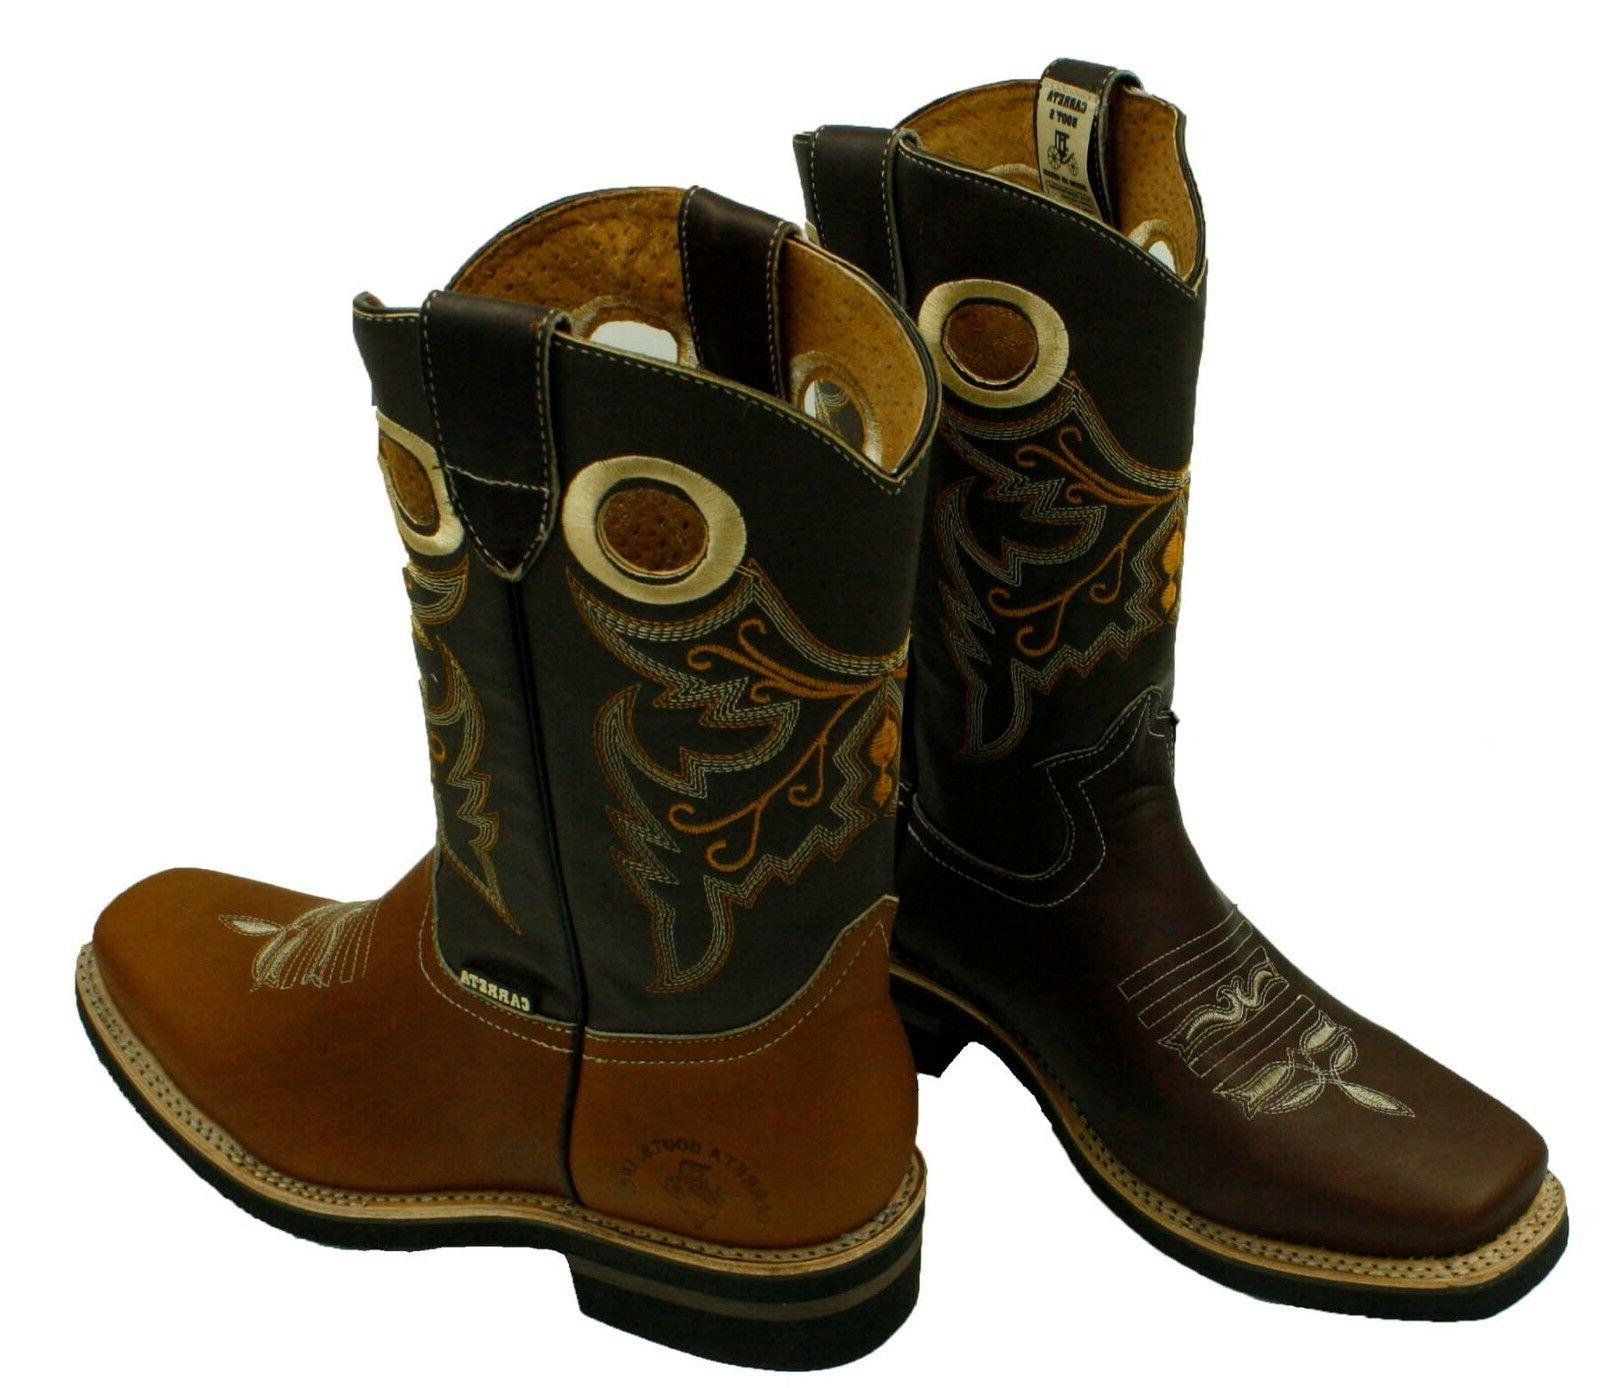 MEN'S RODEO BOOTS GENUINE WESTERN SQUARE TOE